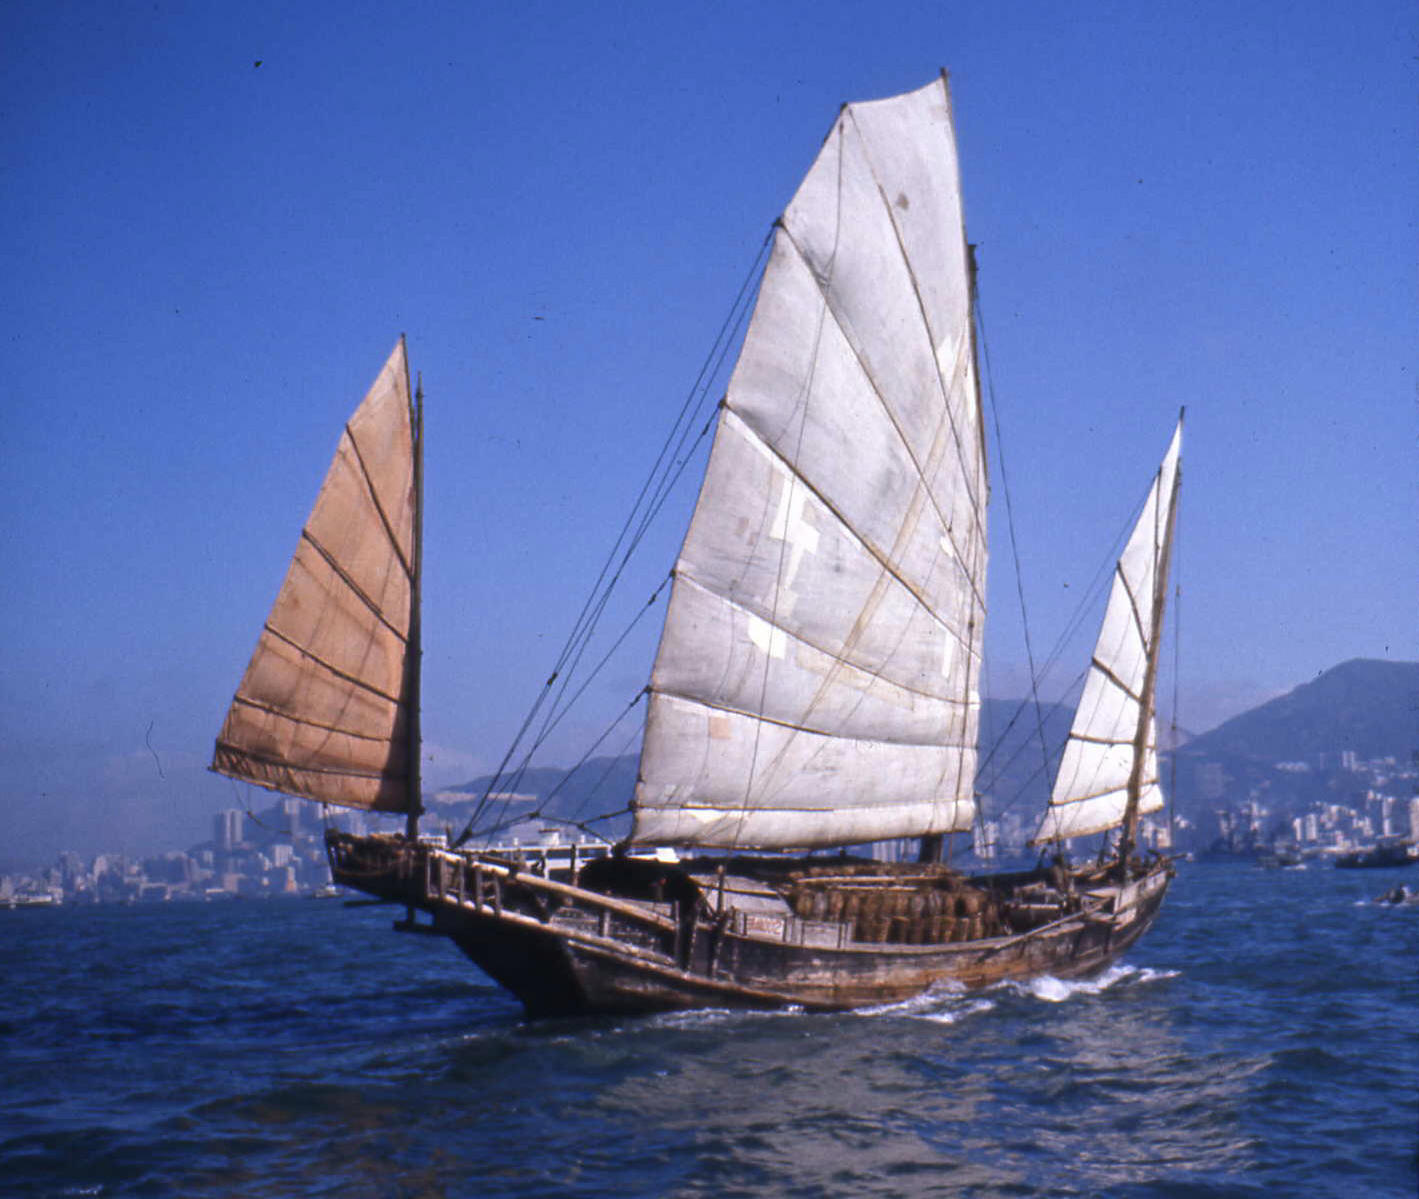 Chinese Fishing Junk in Hong Kong Harbour. Copyright Greta Solly 1969